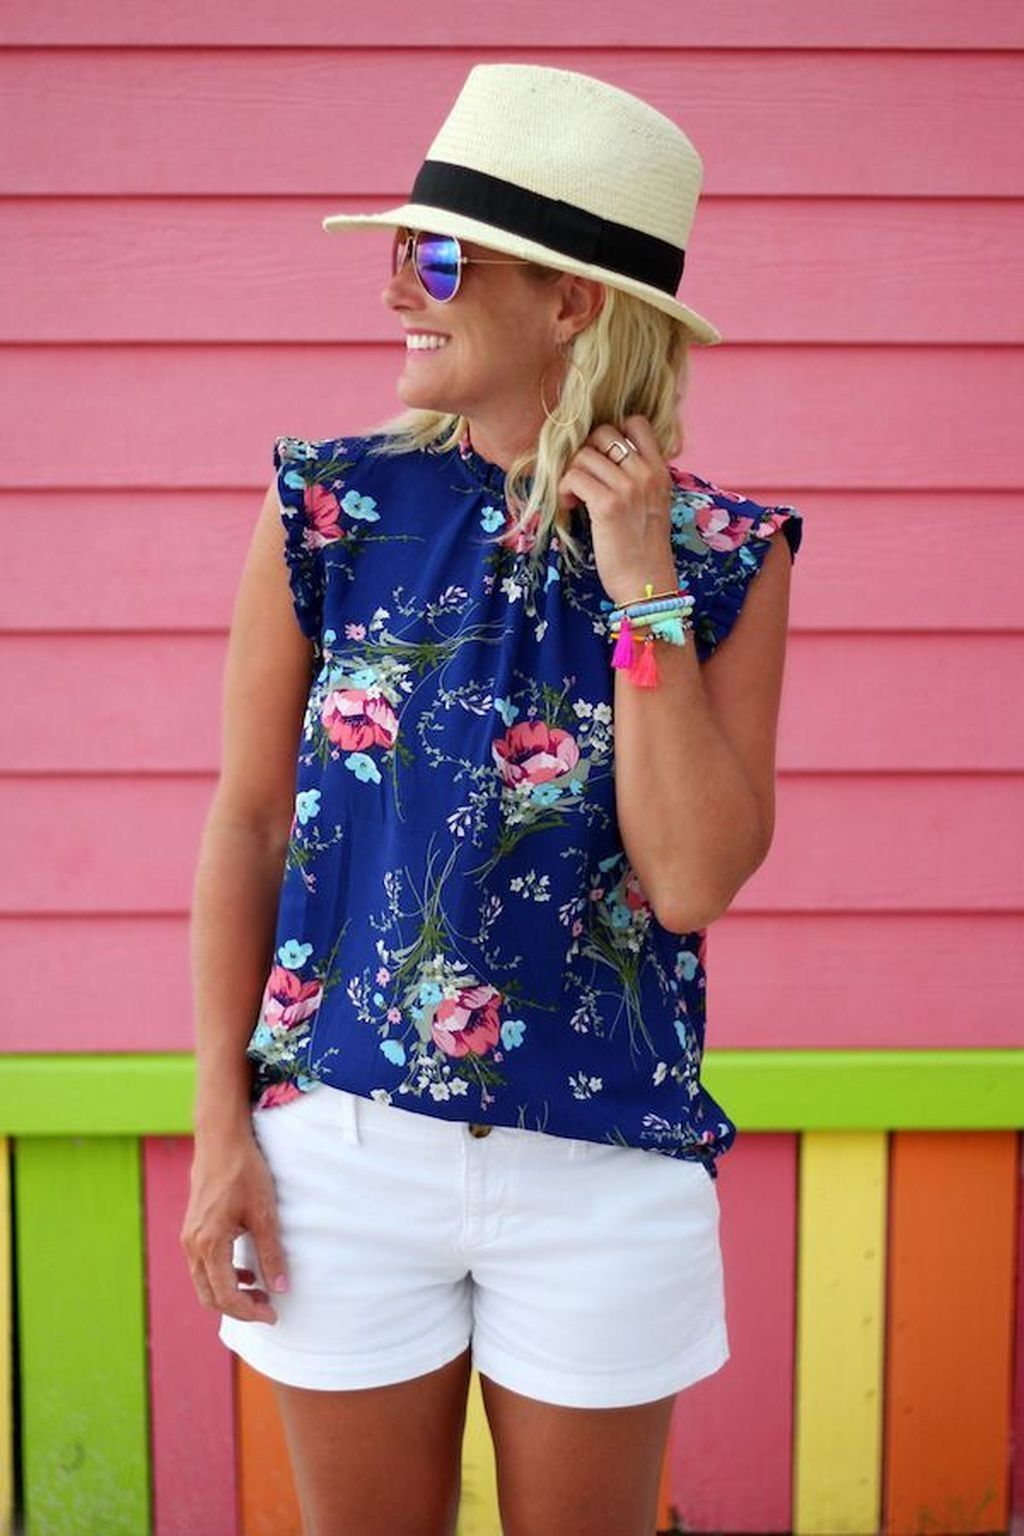 50 Elegant Summer Outfits Ideas For Women Over 40 Years Old - Explore Dream Discover